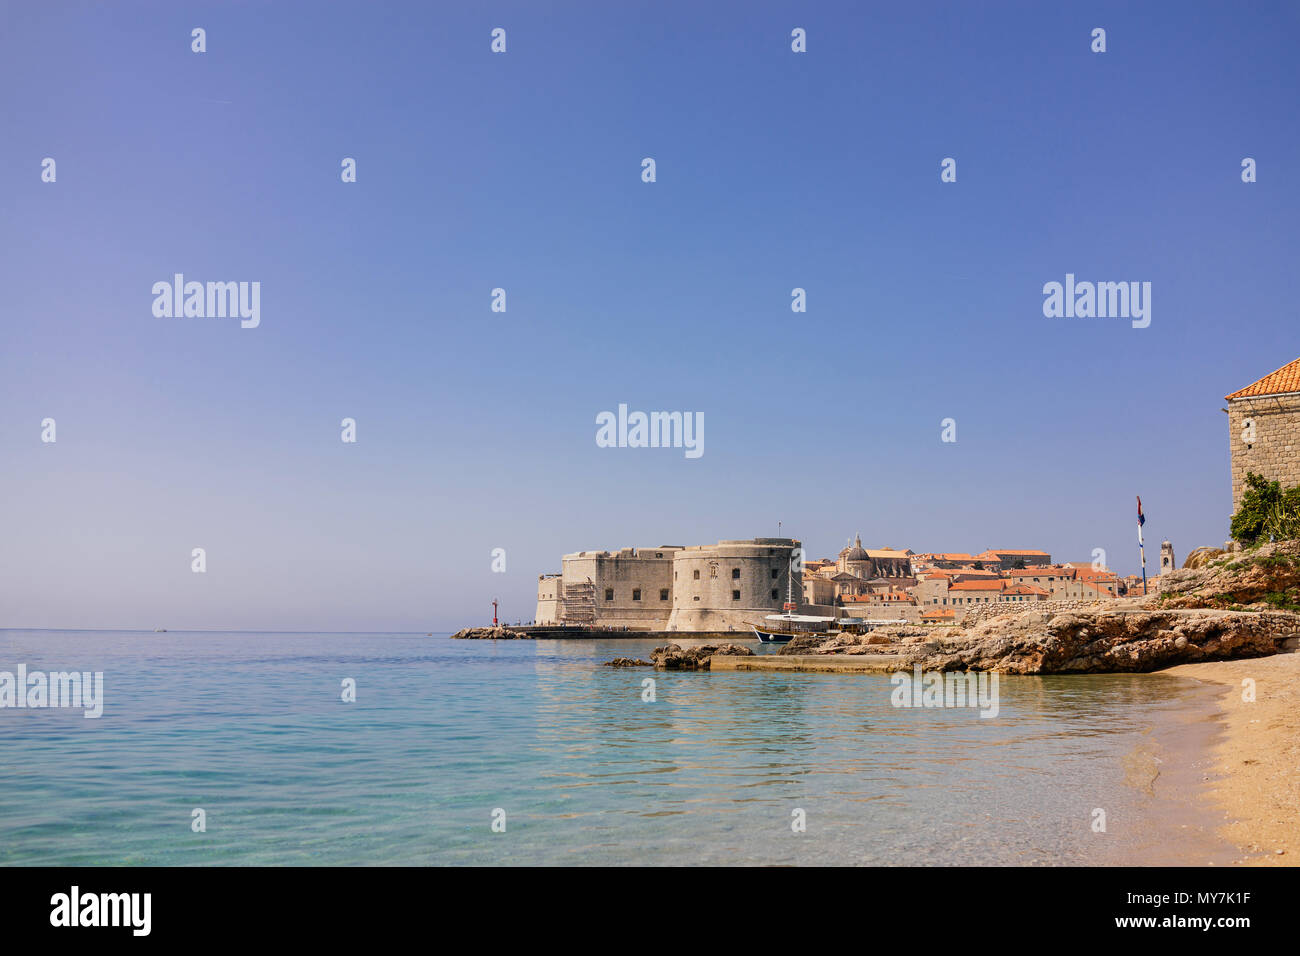 City of Dubrovnik, Croatia. View from Banje beach - Stock Image